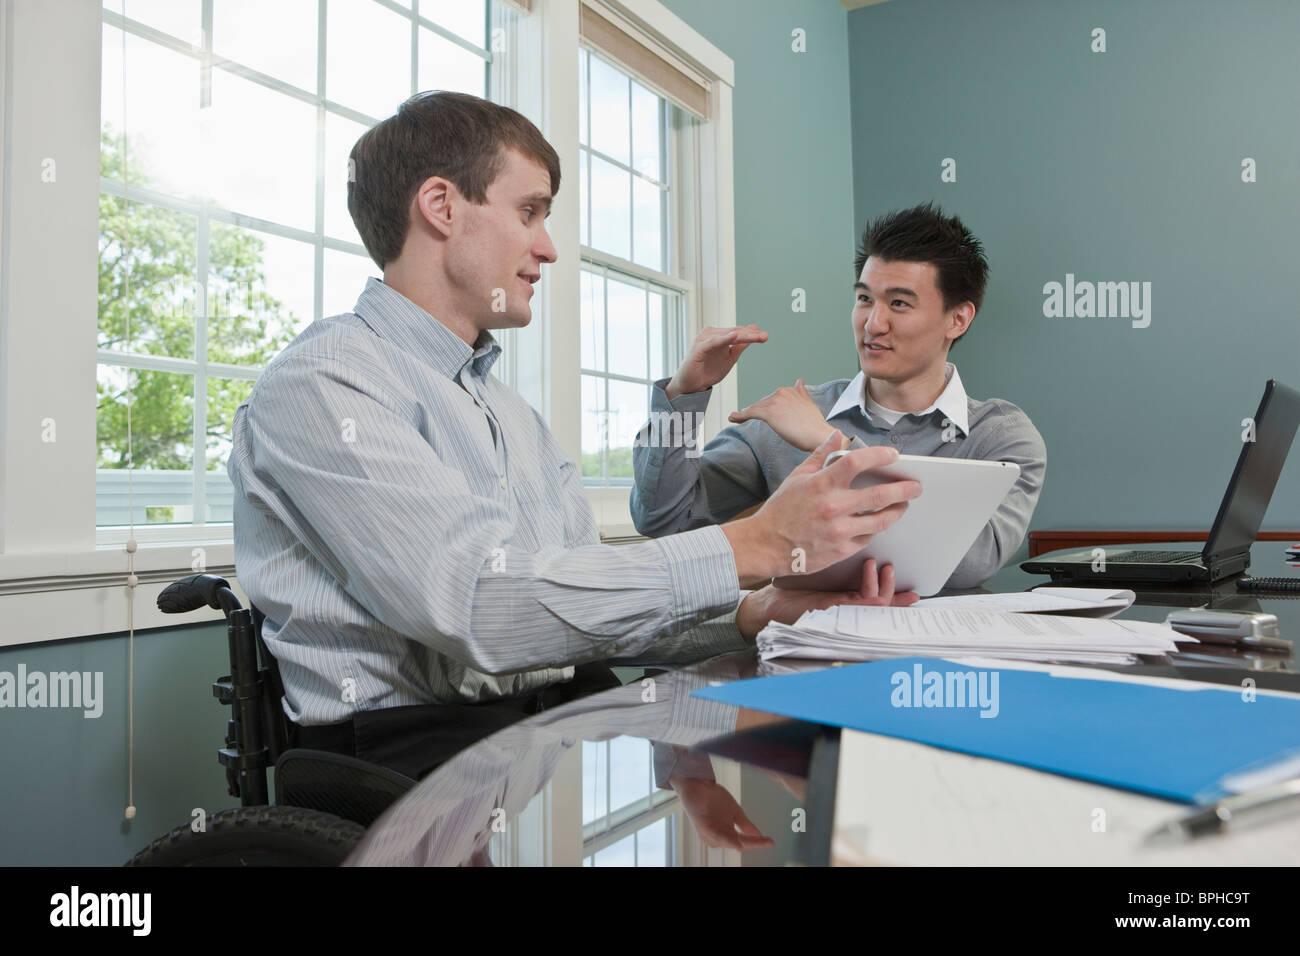 Businessman with spinal cord injury discussing with his colleague in an office - Stock Image